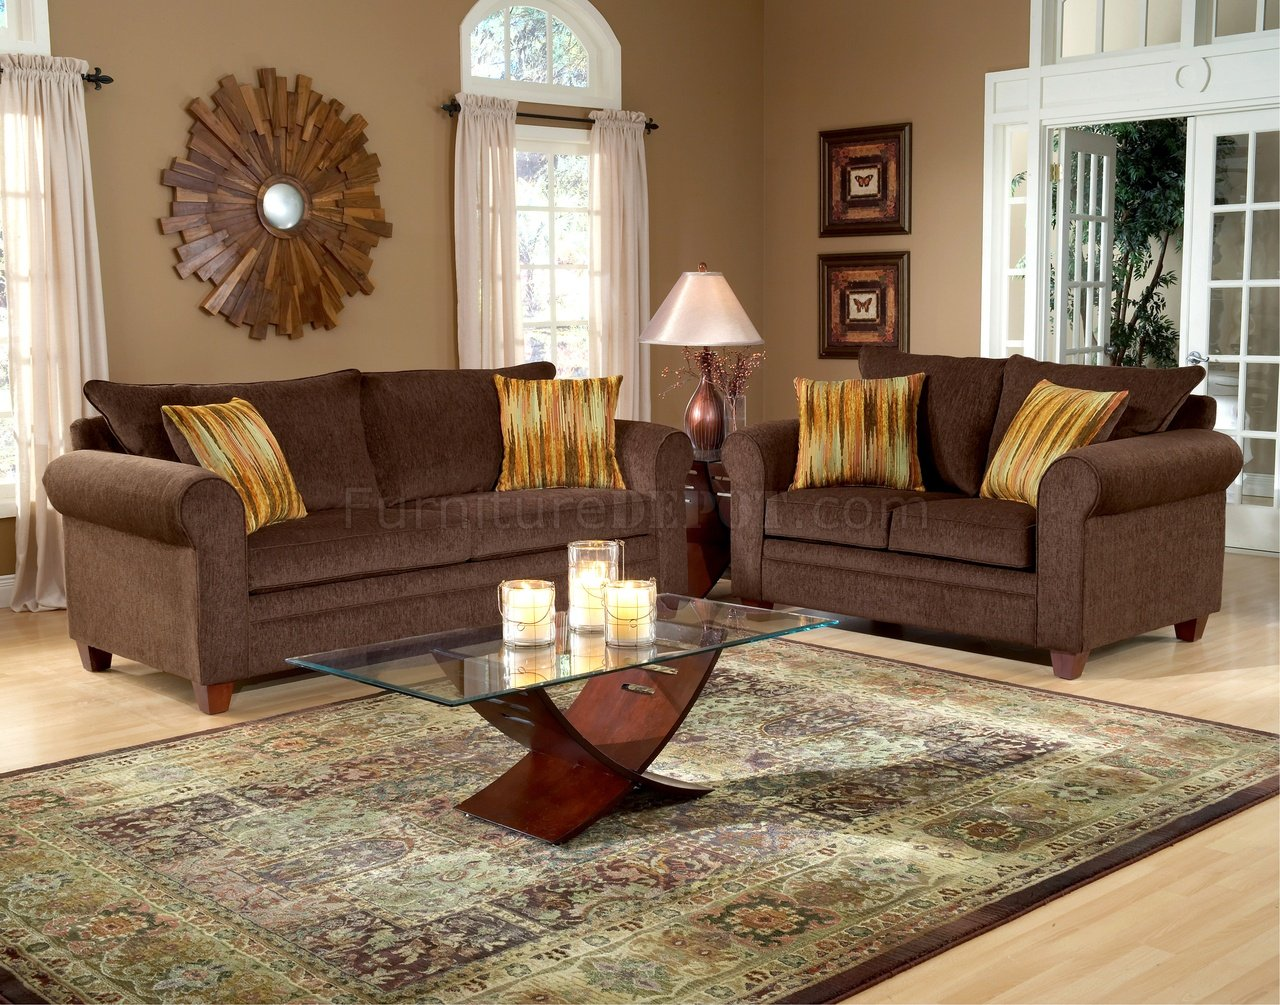 Chocolate fabric elegant living room sofa loveseat set for Chocolate brown couch living room ideas